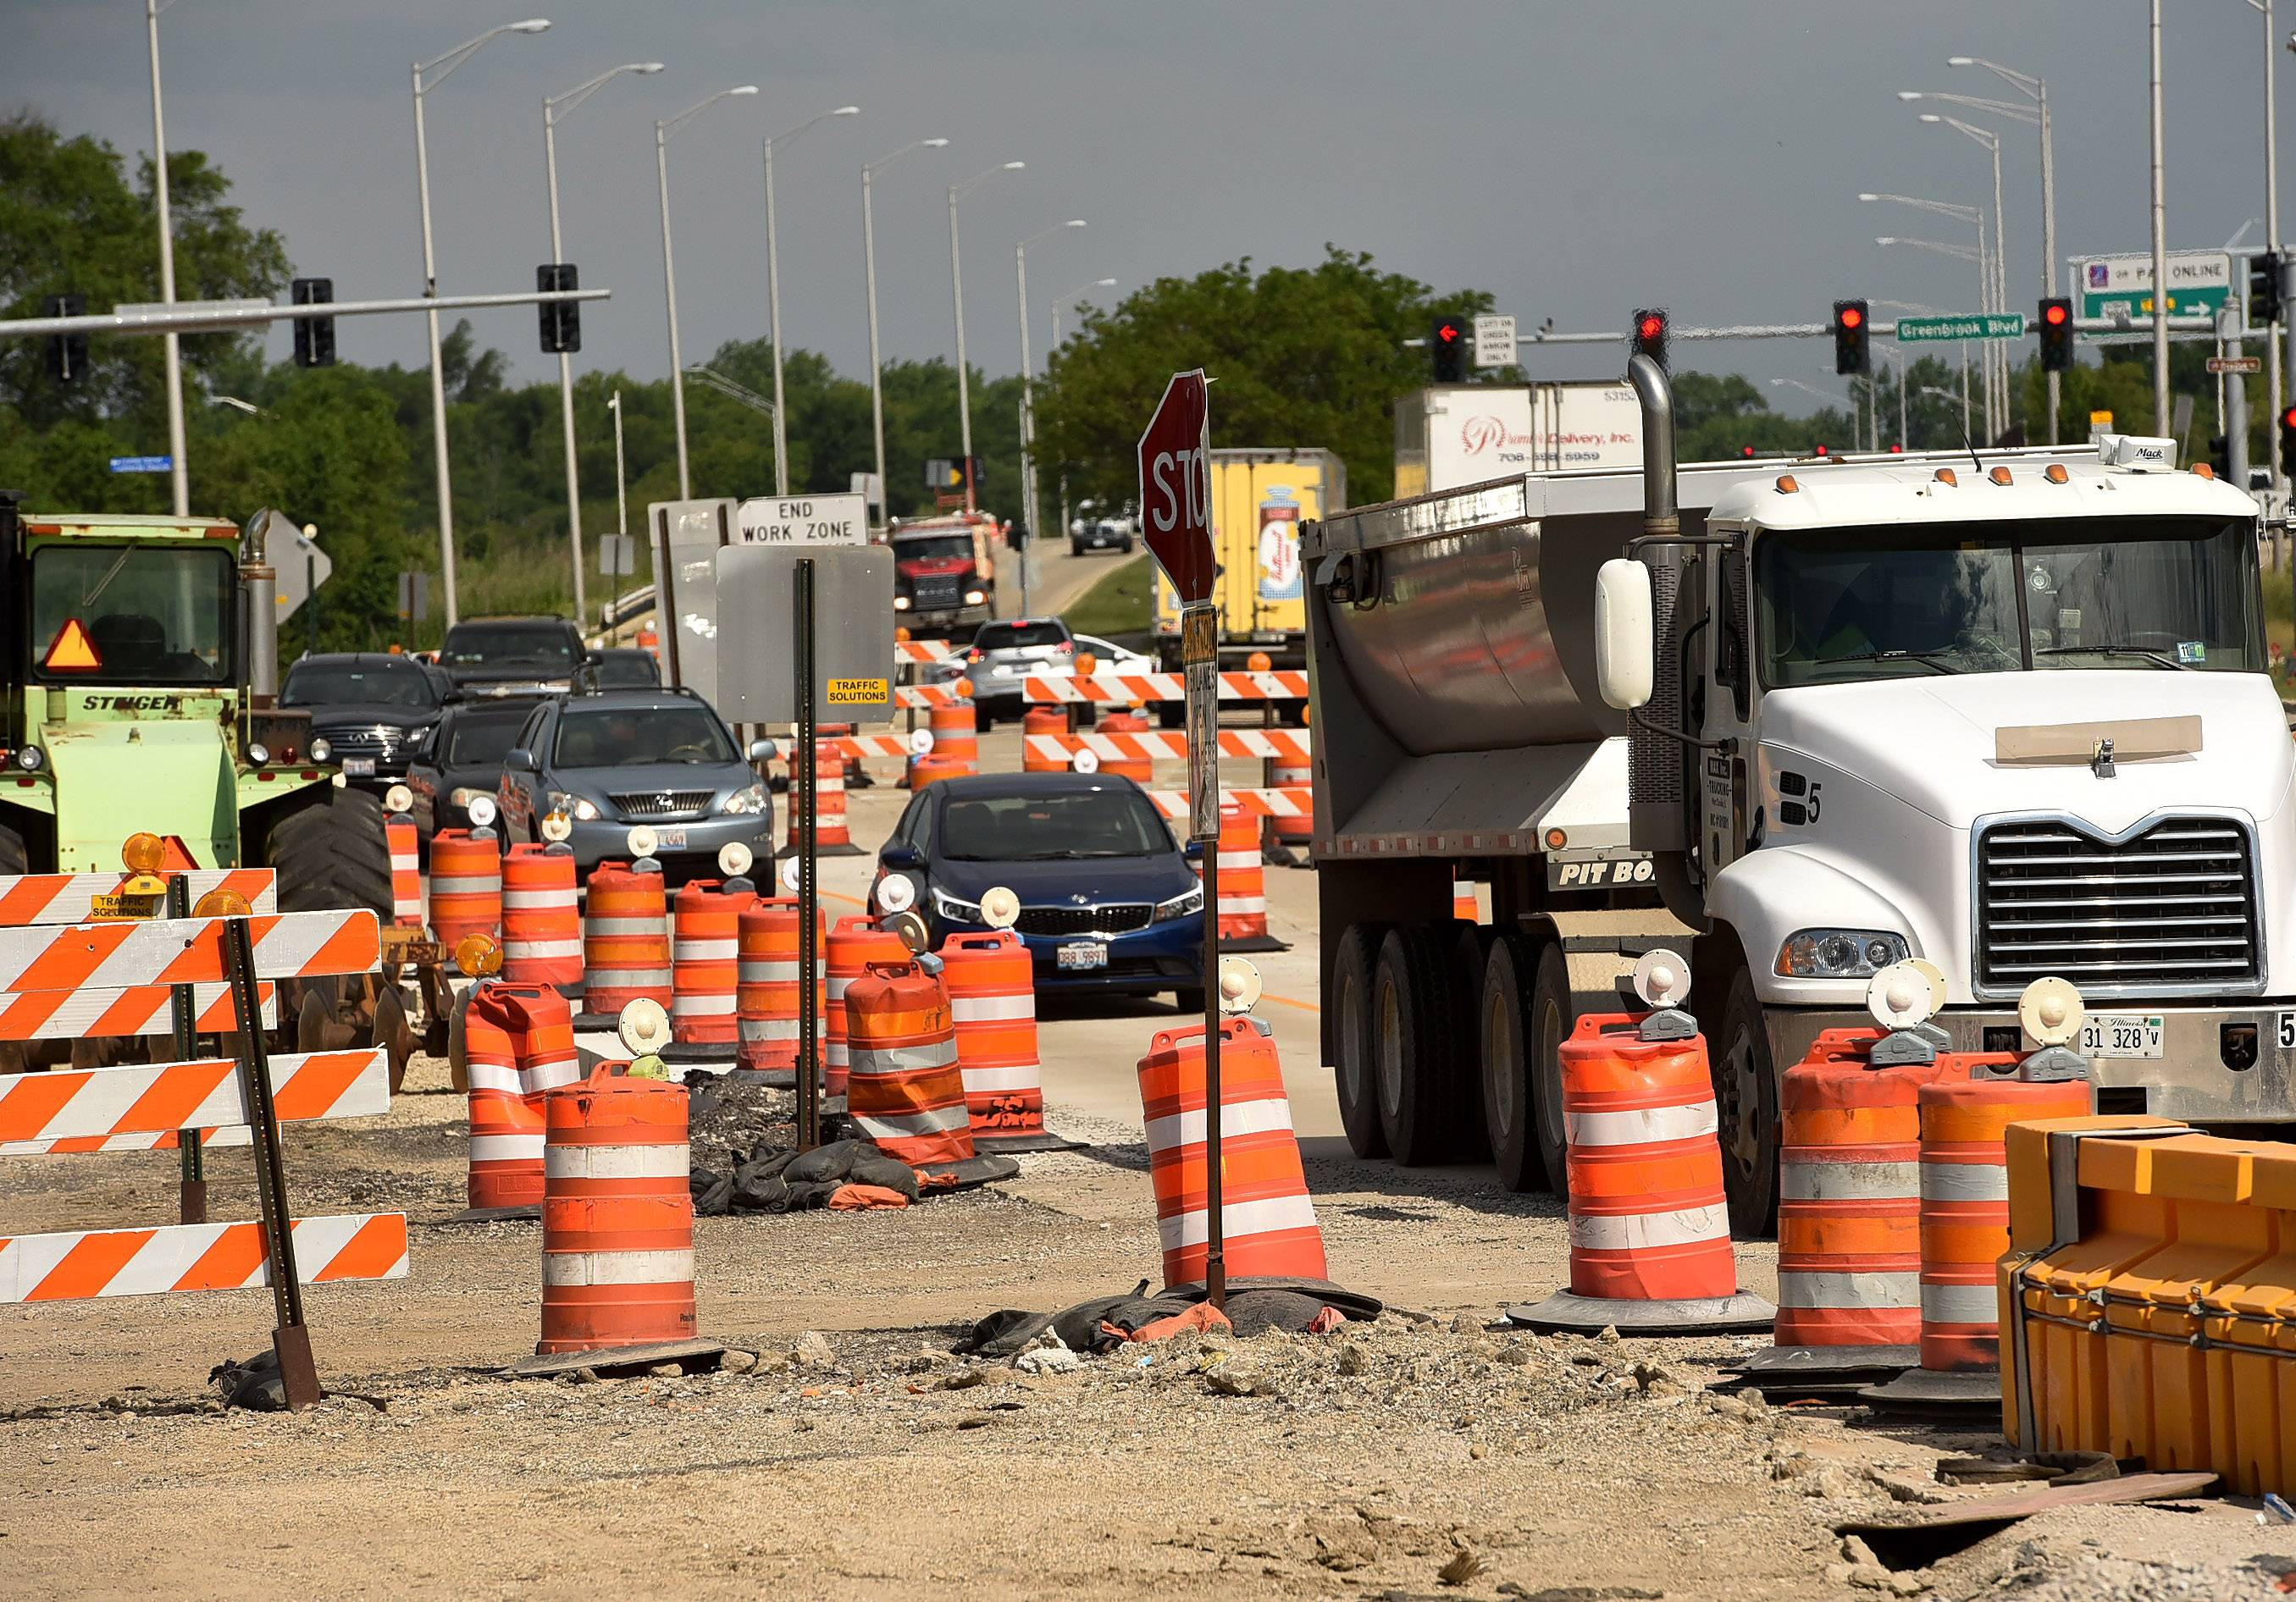 An IDOT project rebuilding Lake Street in Hanover Park is in jeopardy if the state government doesn't resolve budget gridlock. The Illinois Department of Transportation has told contractors to cease work as of Friday if there's no solution.